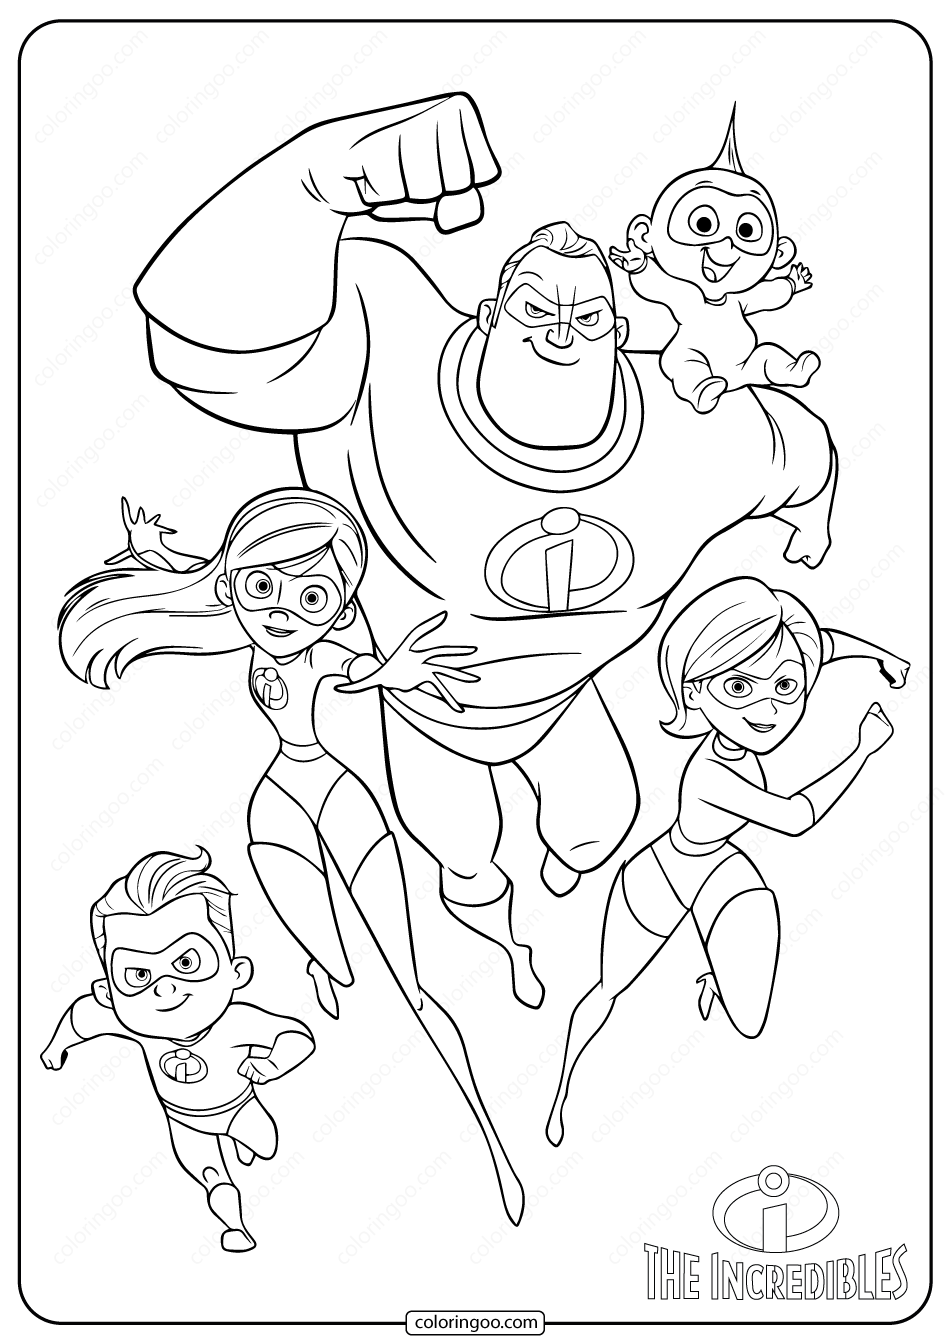 The Incredibles Family Coloring Pages In 2020 Disney Character Drawings Family Coloring Pages Family Drawing